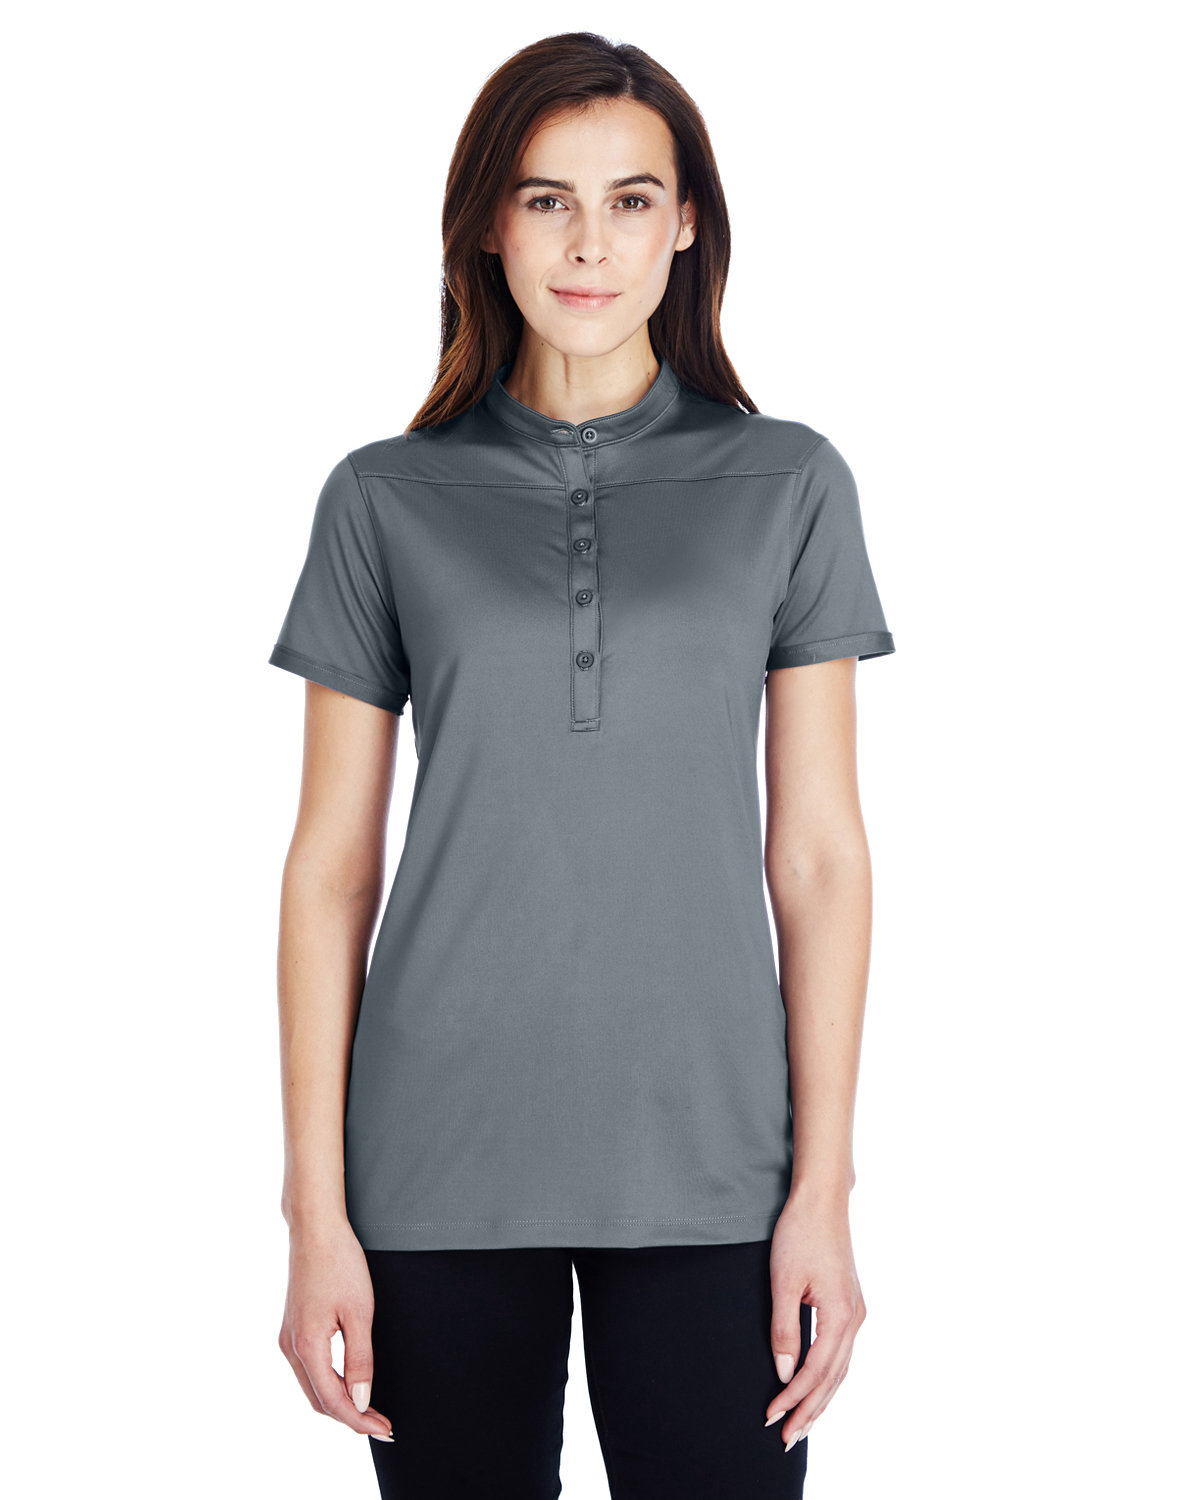 Under Armour SuperSale Ladies' Corporate Performance Polo 2.0 GRAPH/ WHITE _040